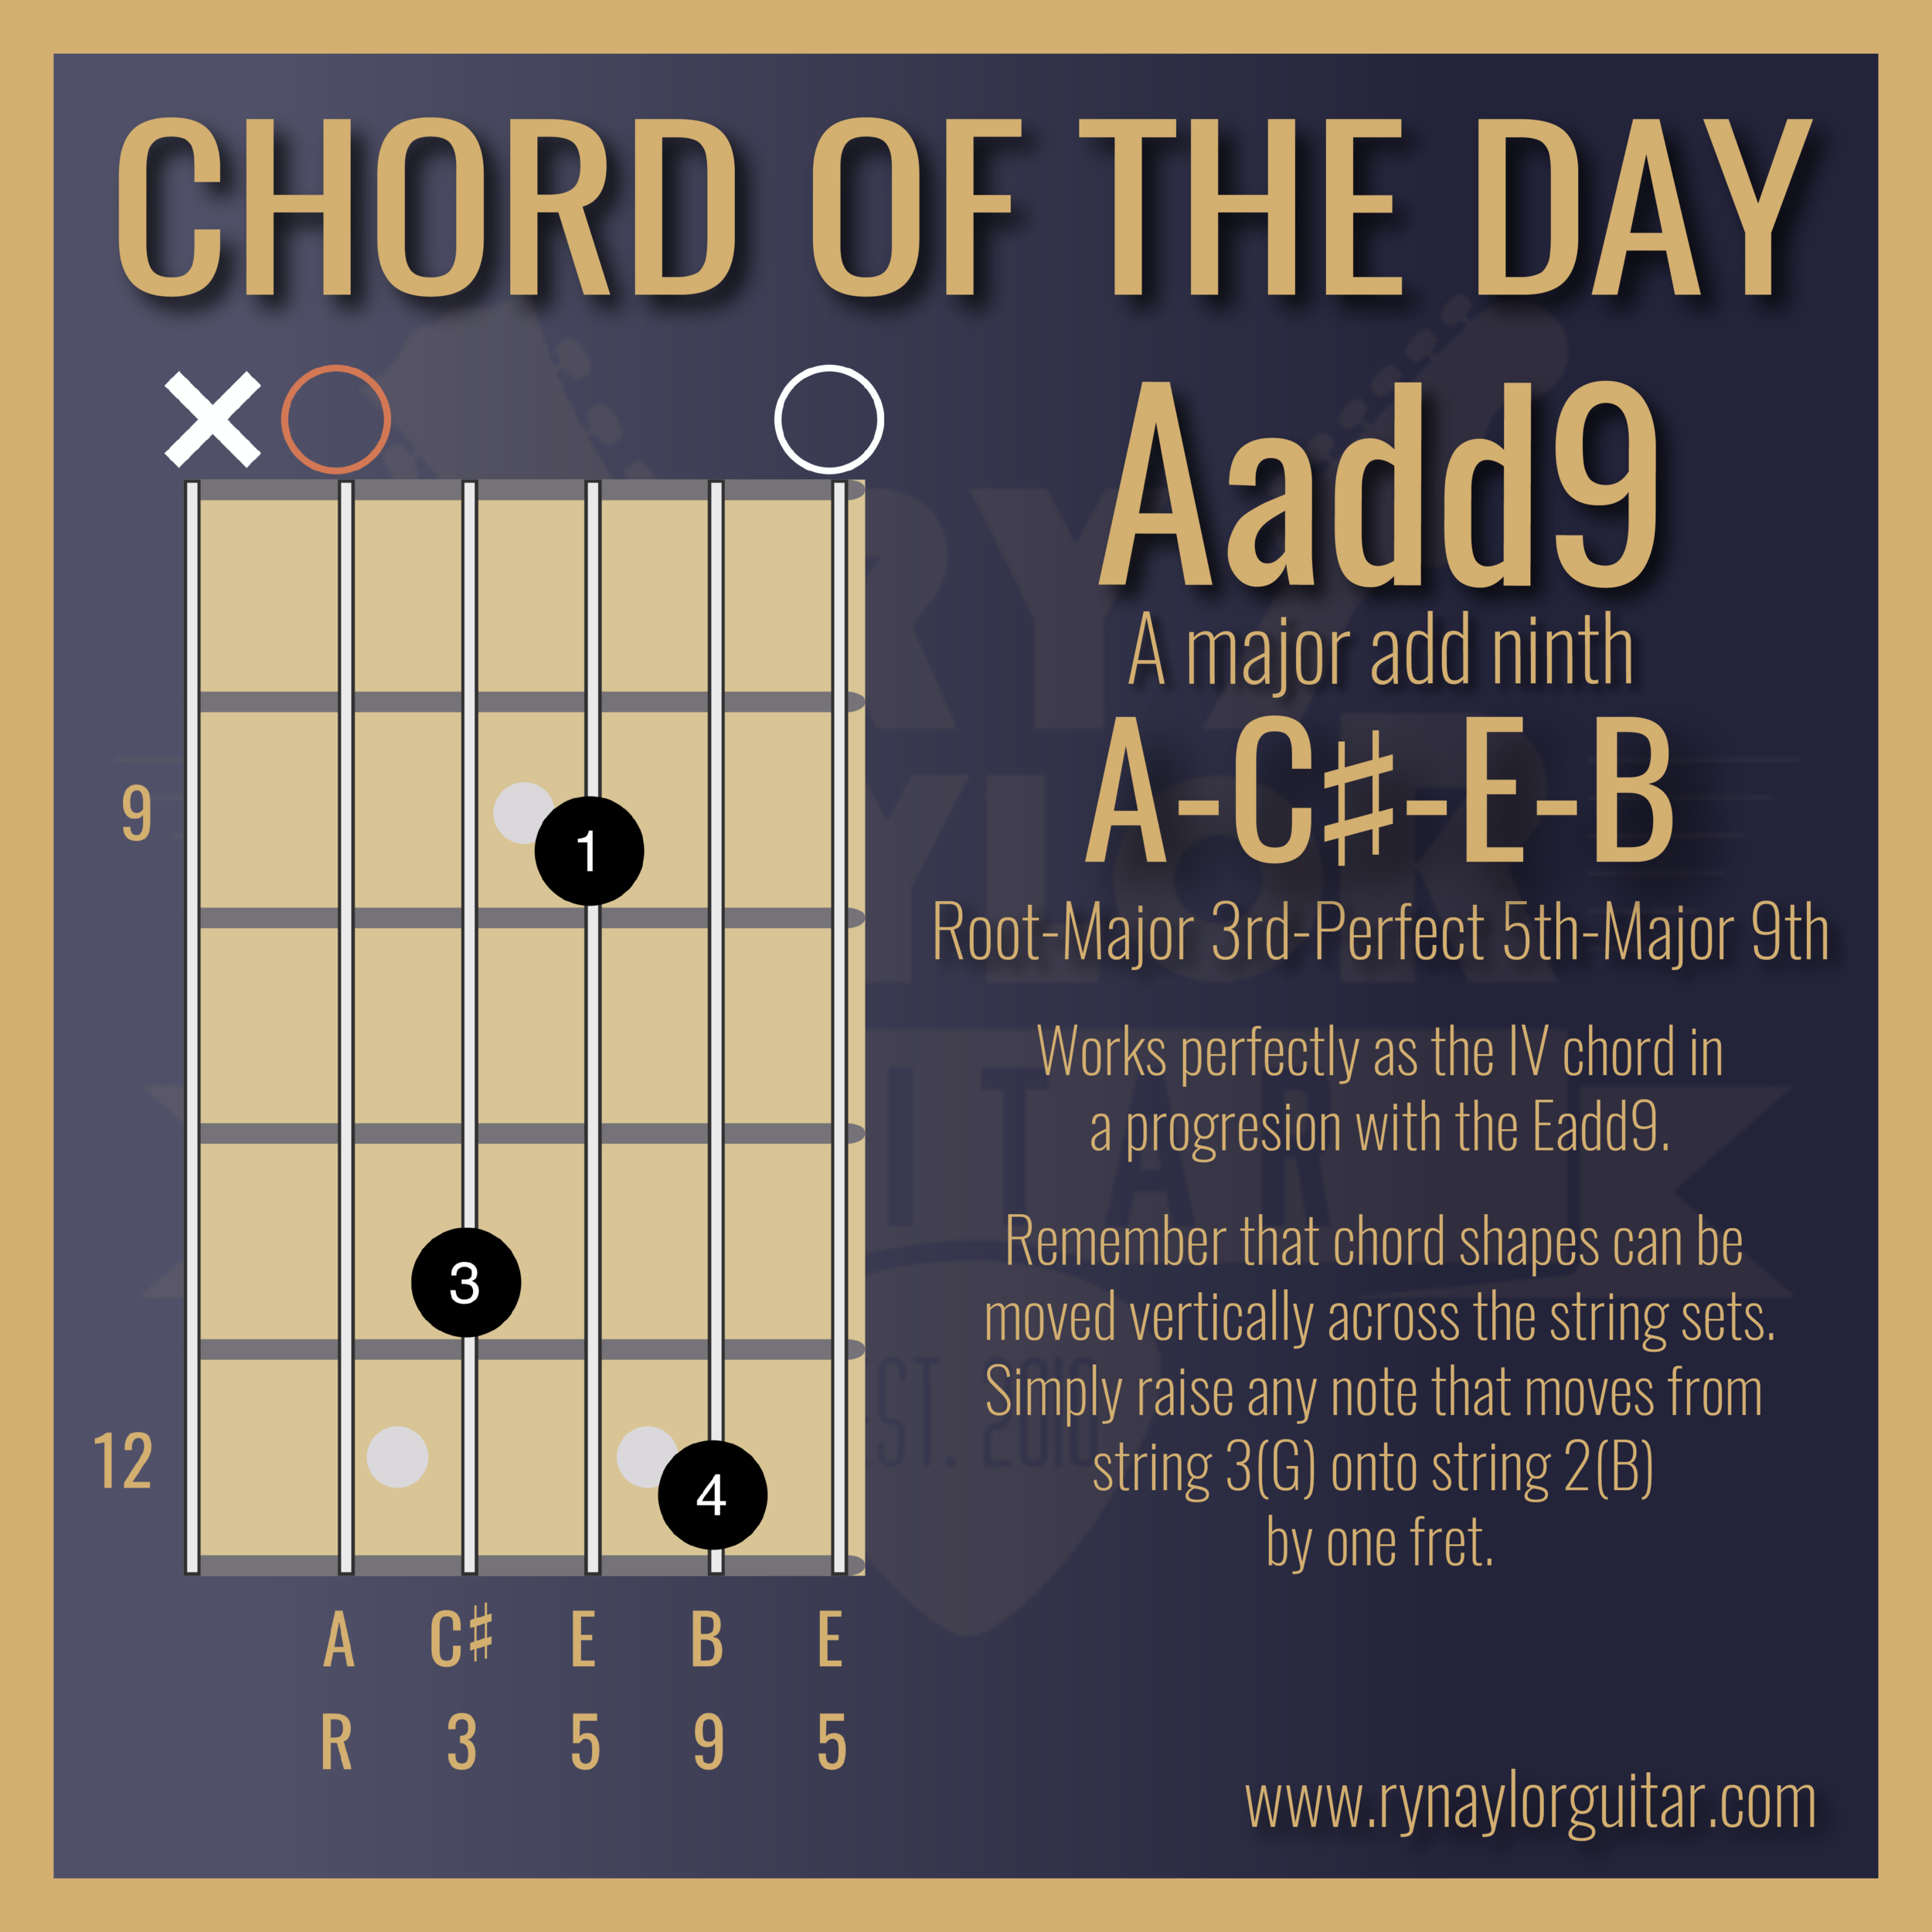 Aadd9 Chord of the Day.png